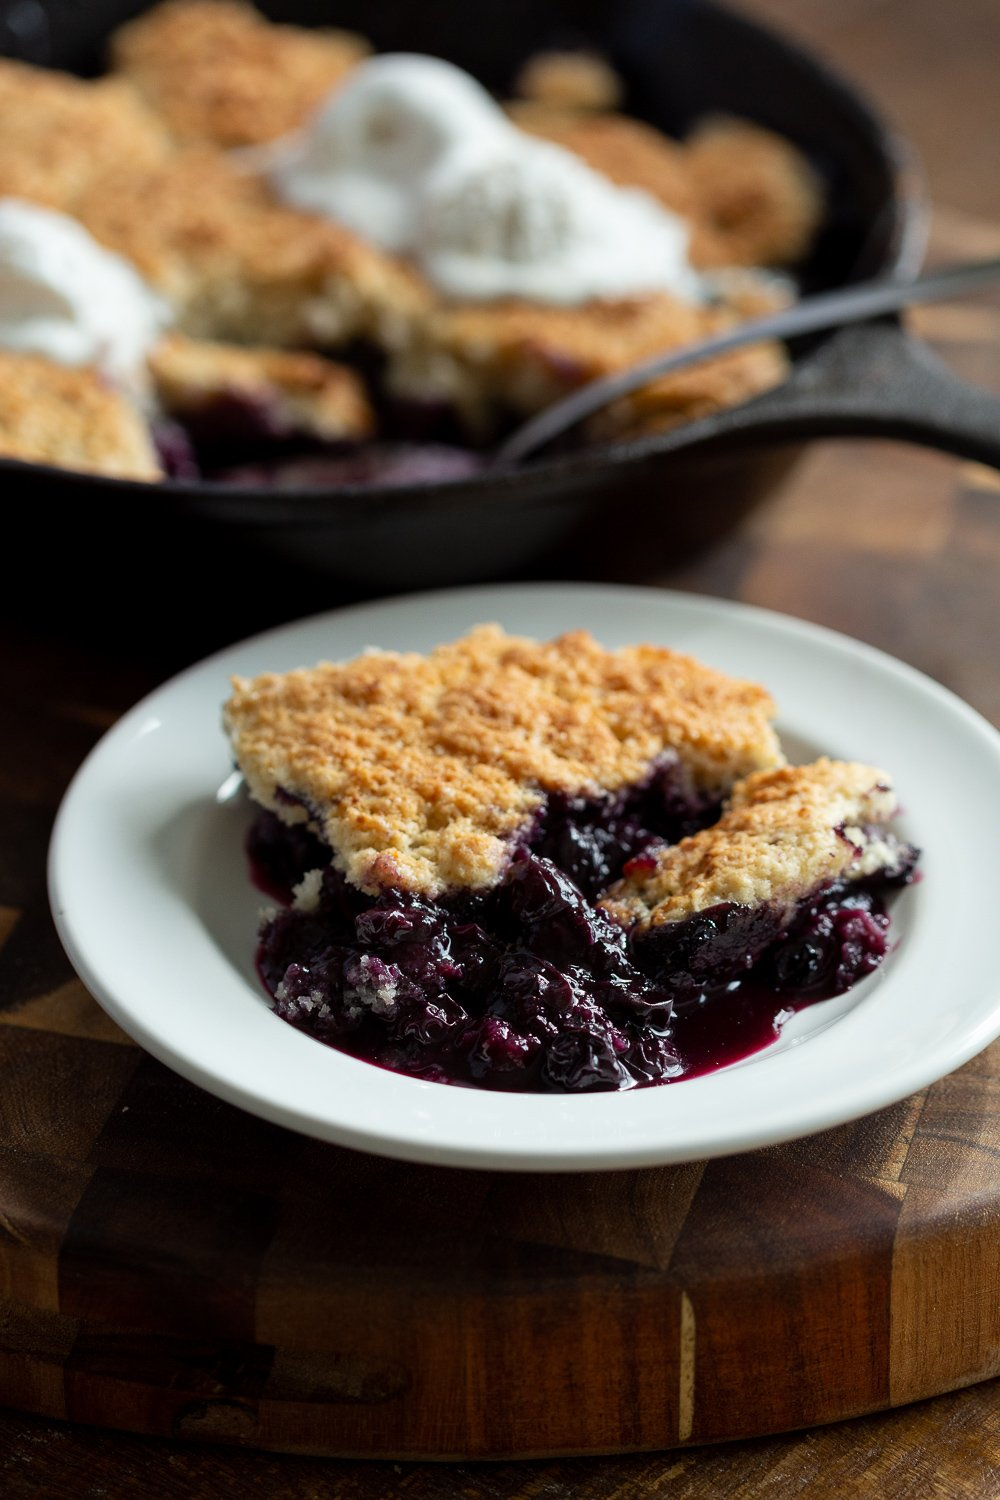 Our Vegan Blueberry Cobbler in white plate